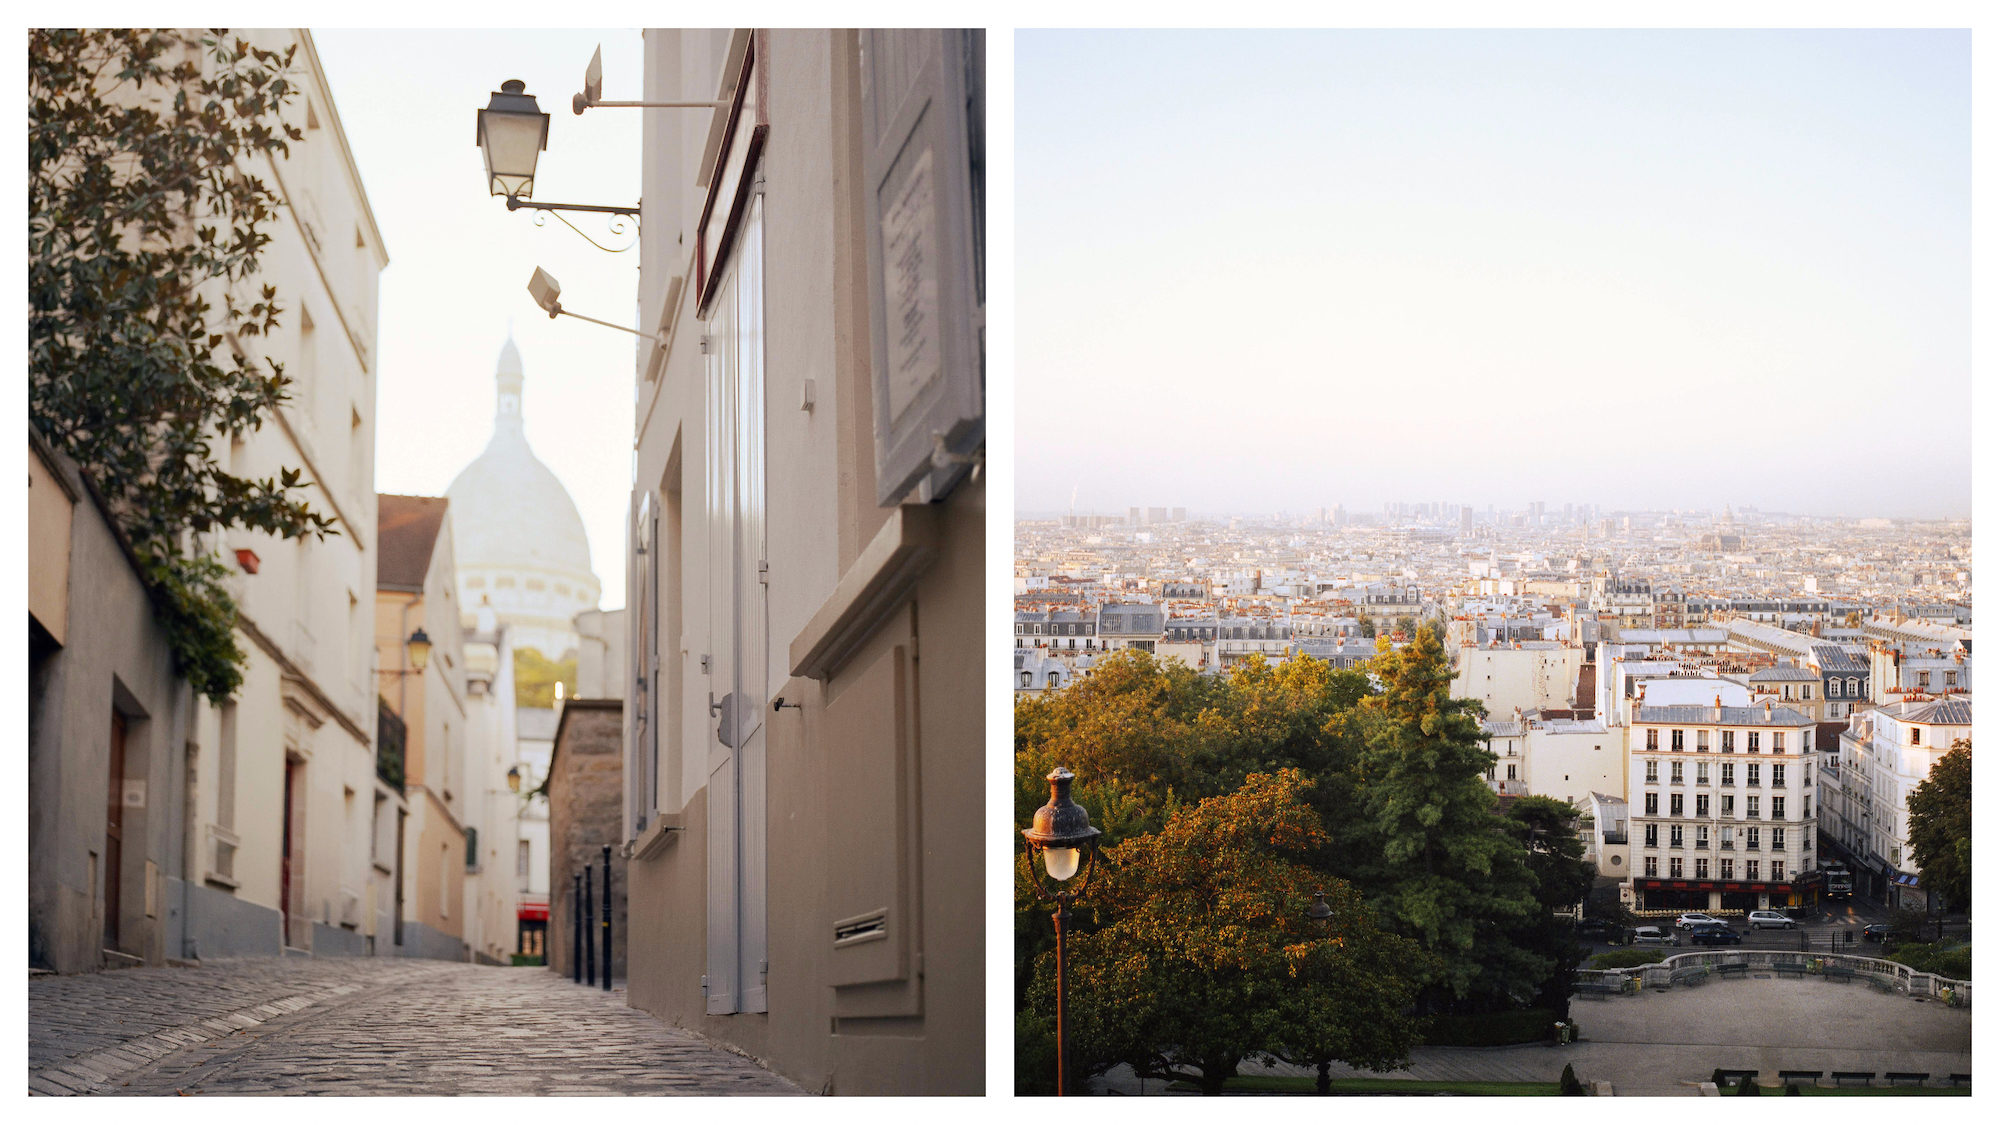 A quiet cobblestone street leading up the the Sacré Coeur Basilica in Montmartre, Paris (left). A panoramic view of the Paris rooftops from the Sacré Coeur in Montmartre (right).